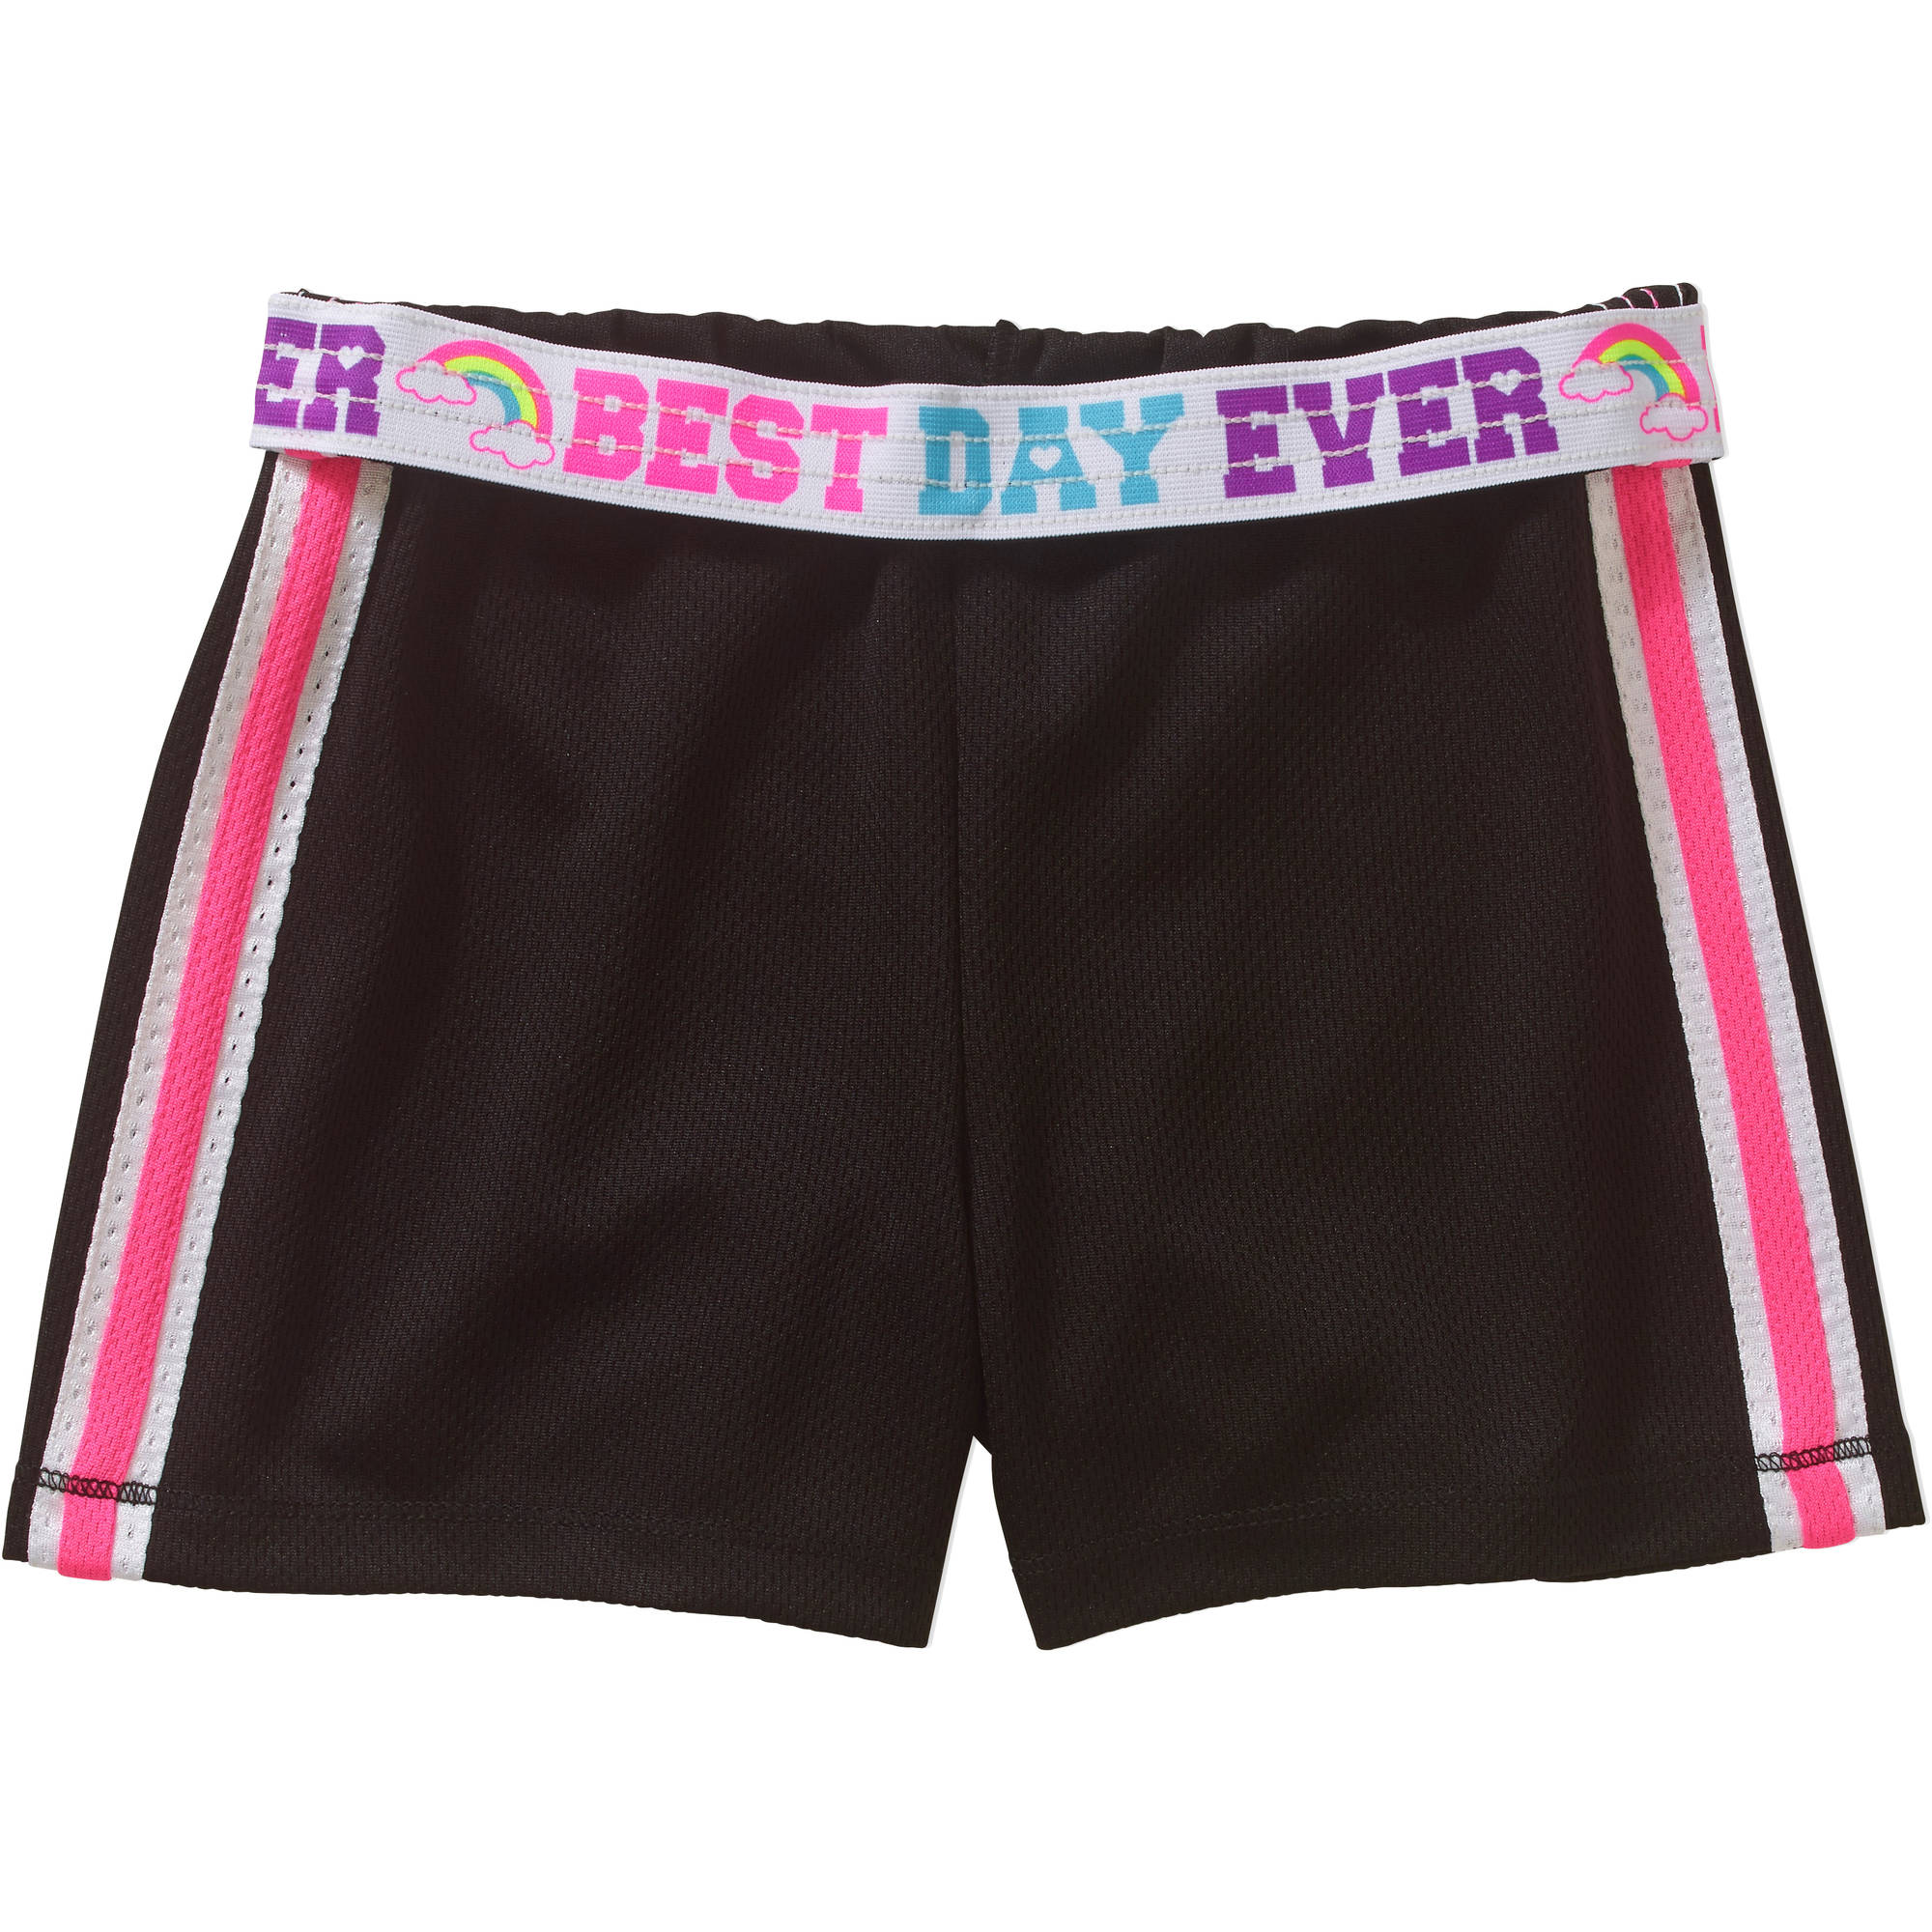 Faded Glory Girls' Solid Mesh Shorts by